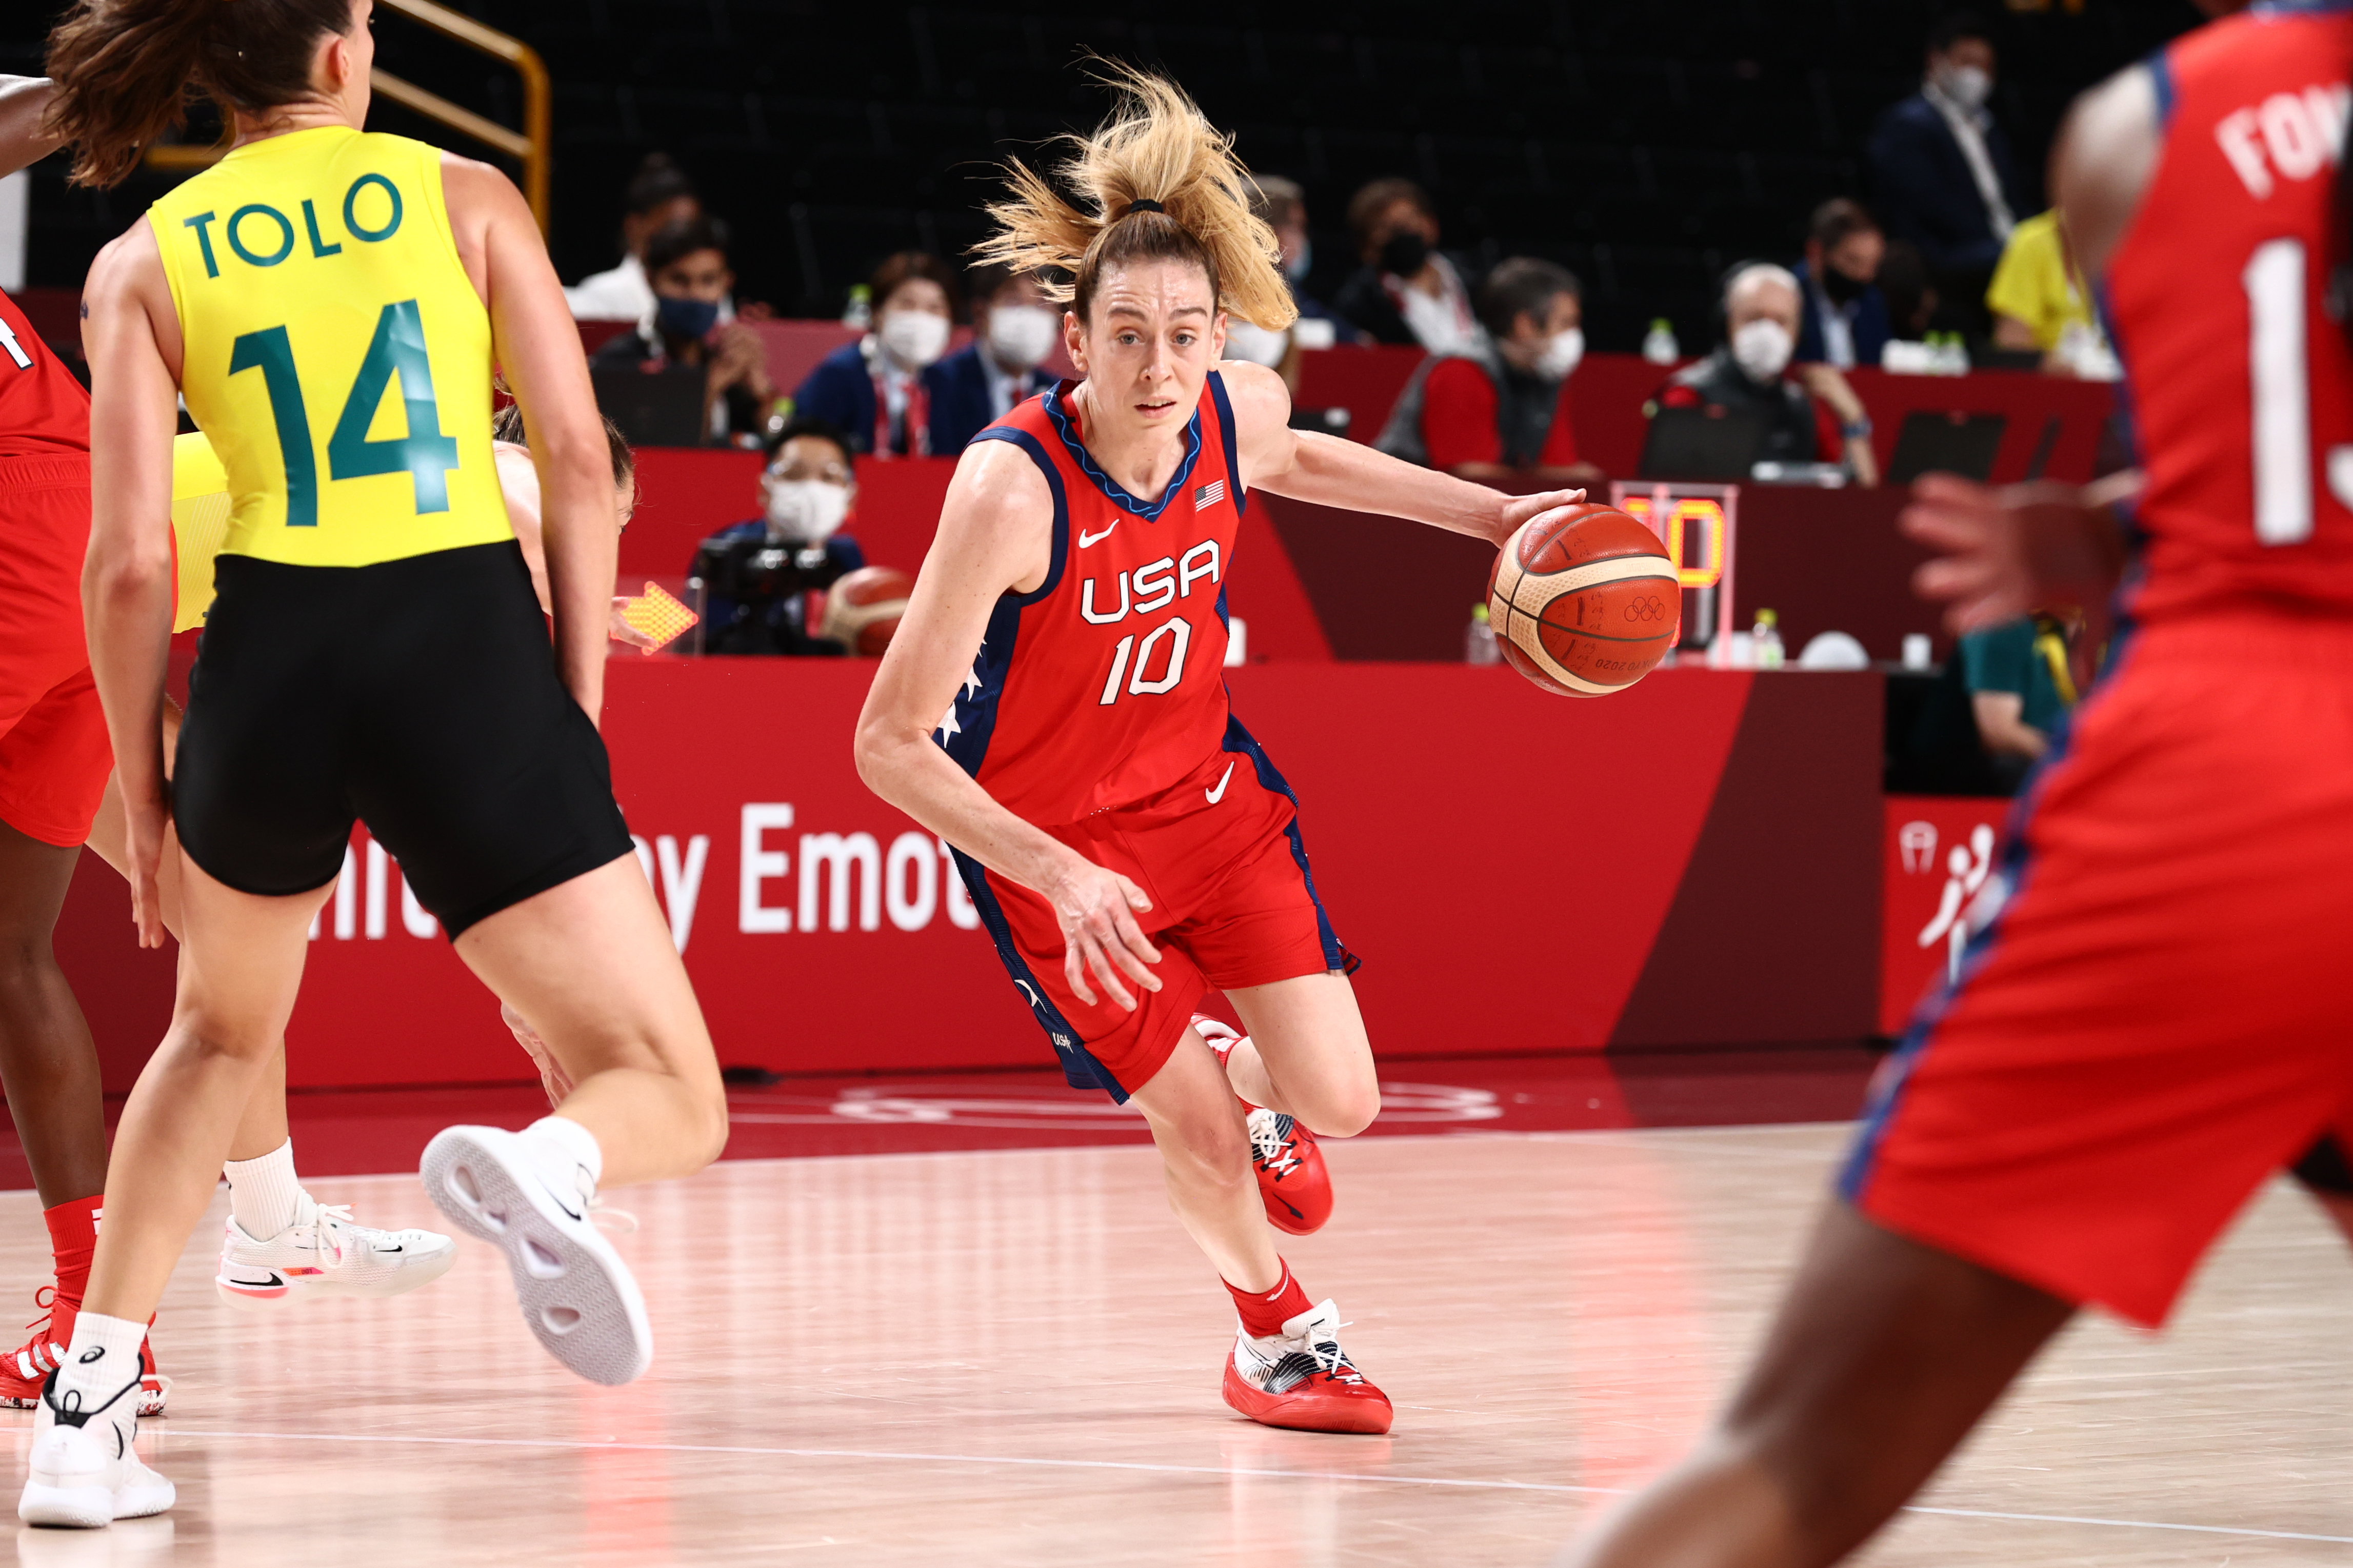 Breanna Stewart #10 of the USA Women's National Team dribbles the ball during the game against the Australia Women's National Team during the 2020 Tokyo Olympics on August 4, 2021 at the Super Saitama Arena in Tokyo, Japan.